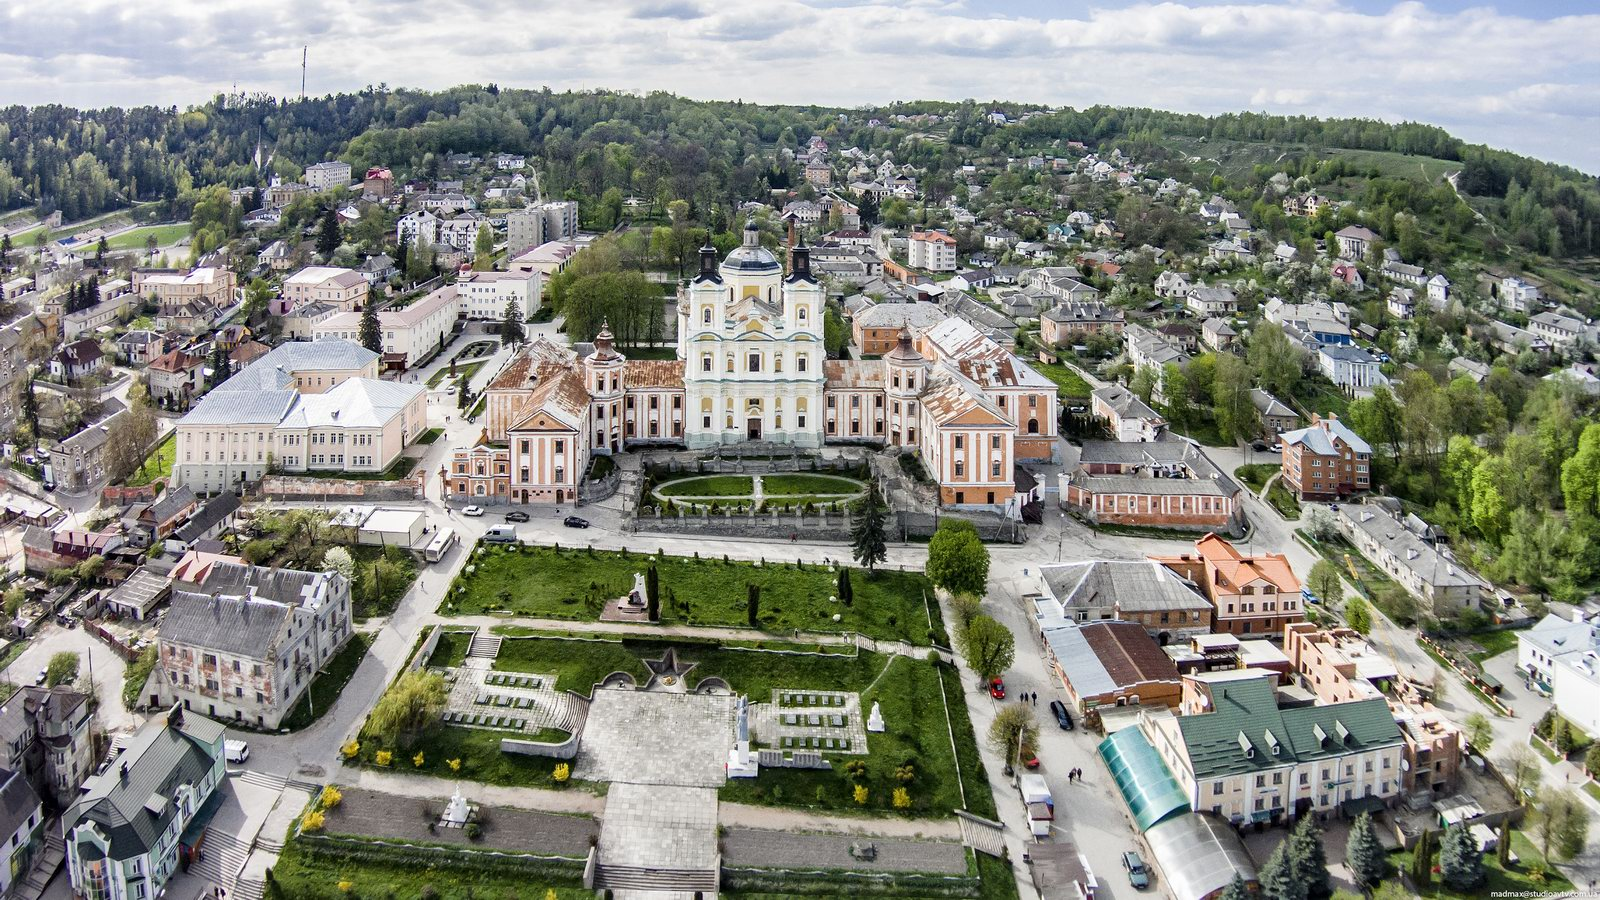 General education schools of the city of Kremenets: addresses and phone numbers